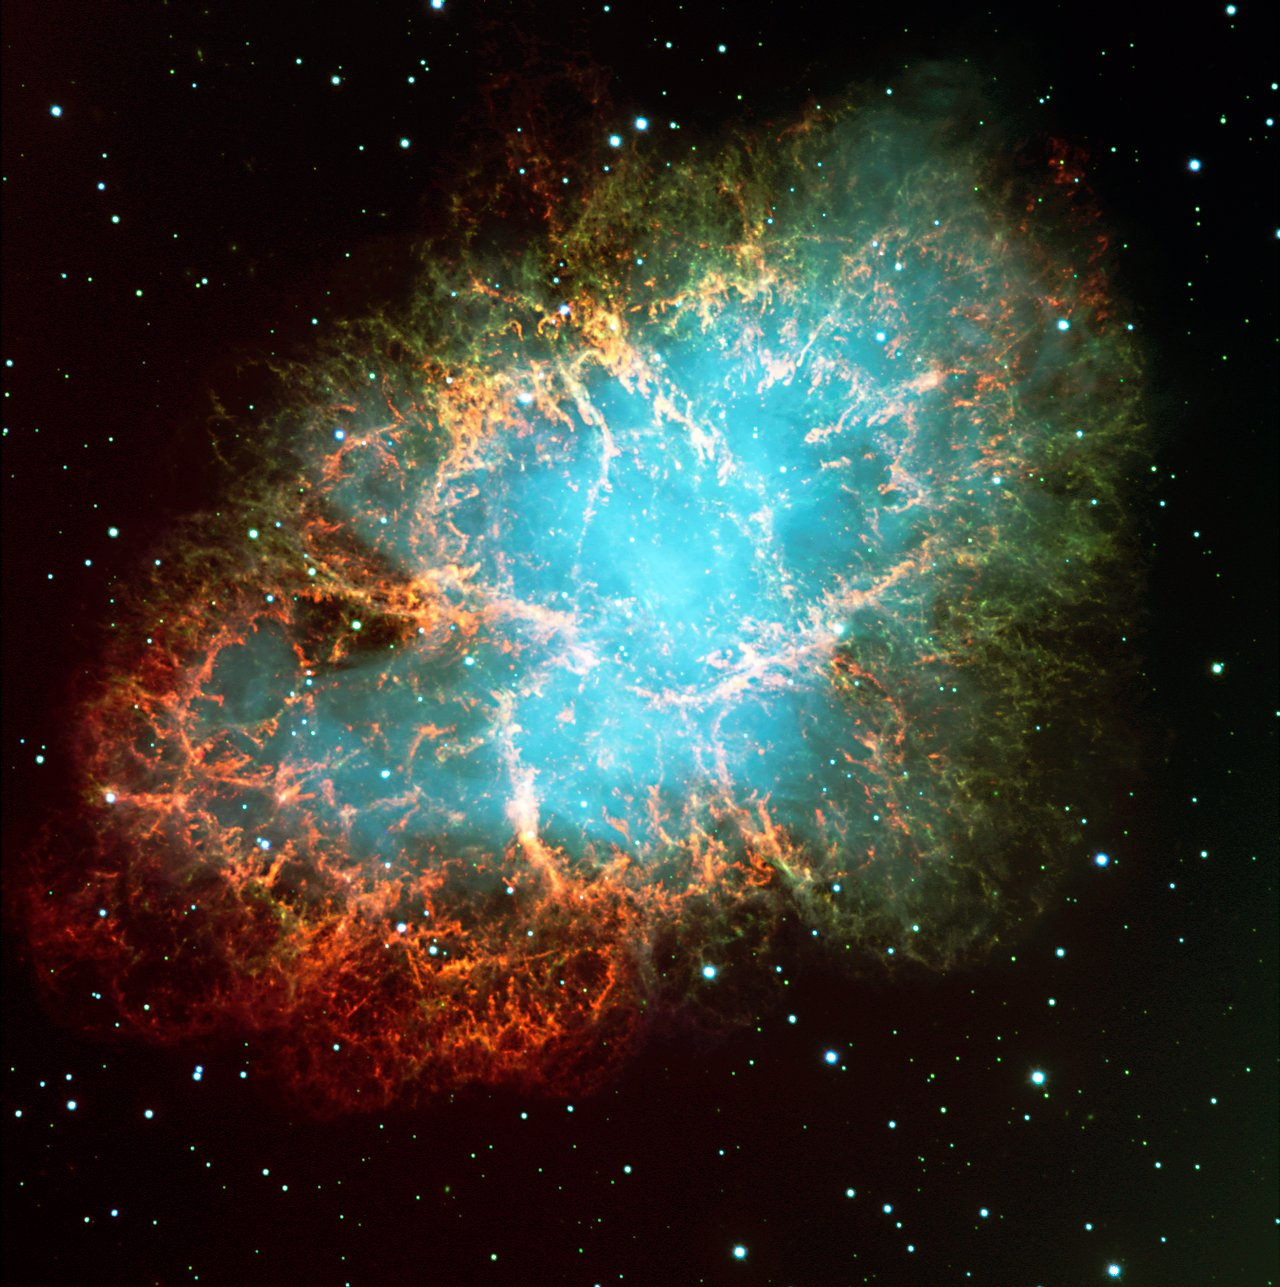 Mounted image 153: The Crab Nebula in Taurus